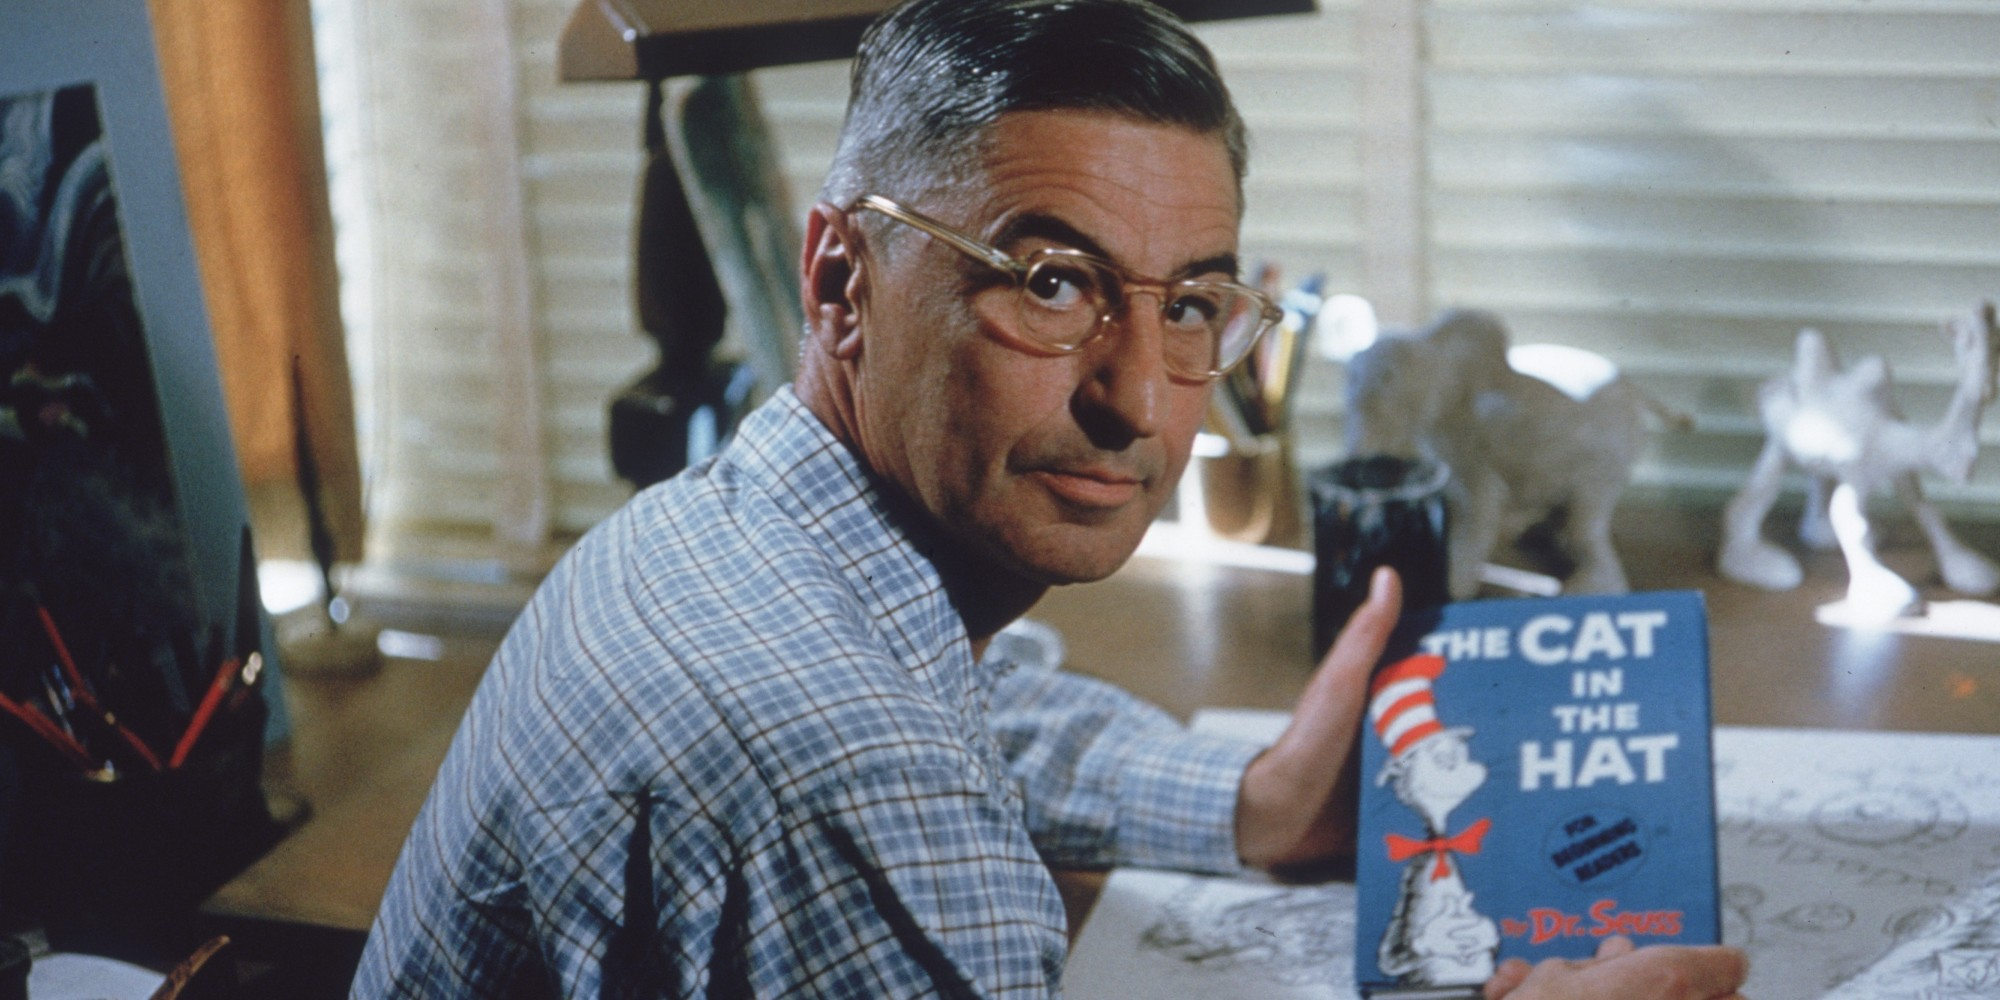 here 39 s how dr seuss born this day in 1904 was part of the pro vaccine movement huffpost. Black Bedroom Furniture Sets. Home Design Ideas